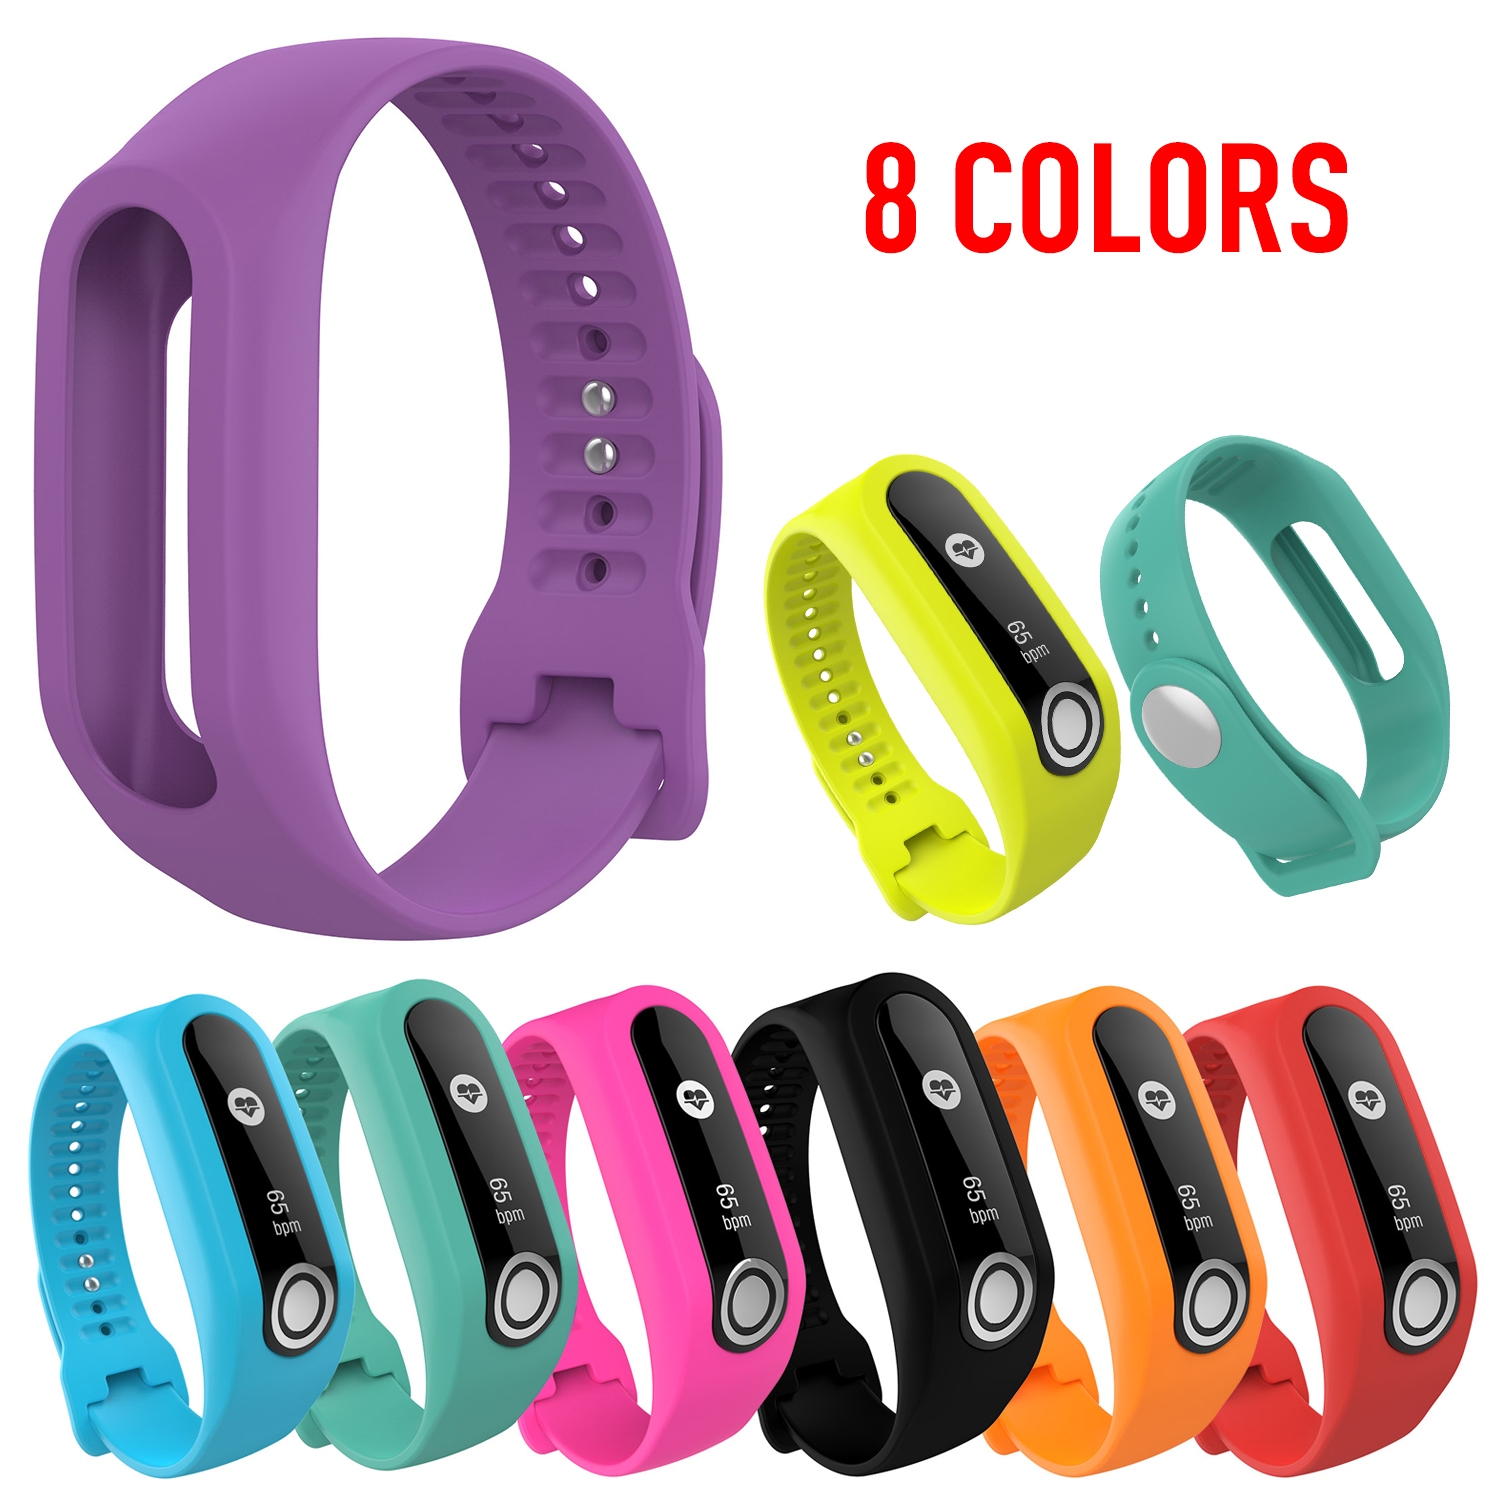 Silicone Band Strap For TomTom Touch Cardio Activity Tracker Silicone Replacement Wrist Band Strap Watch Band Smart Bracelet